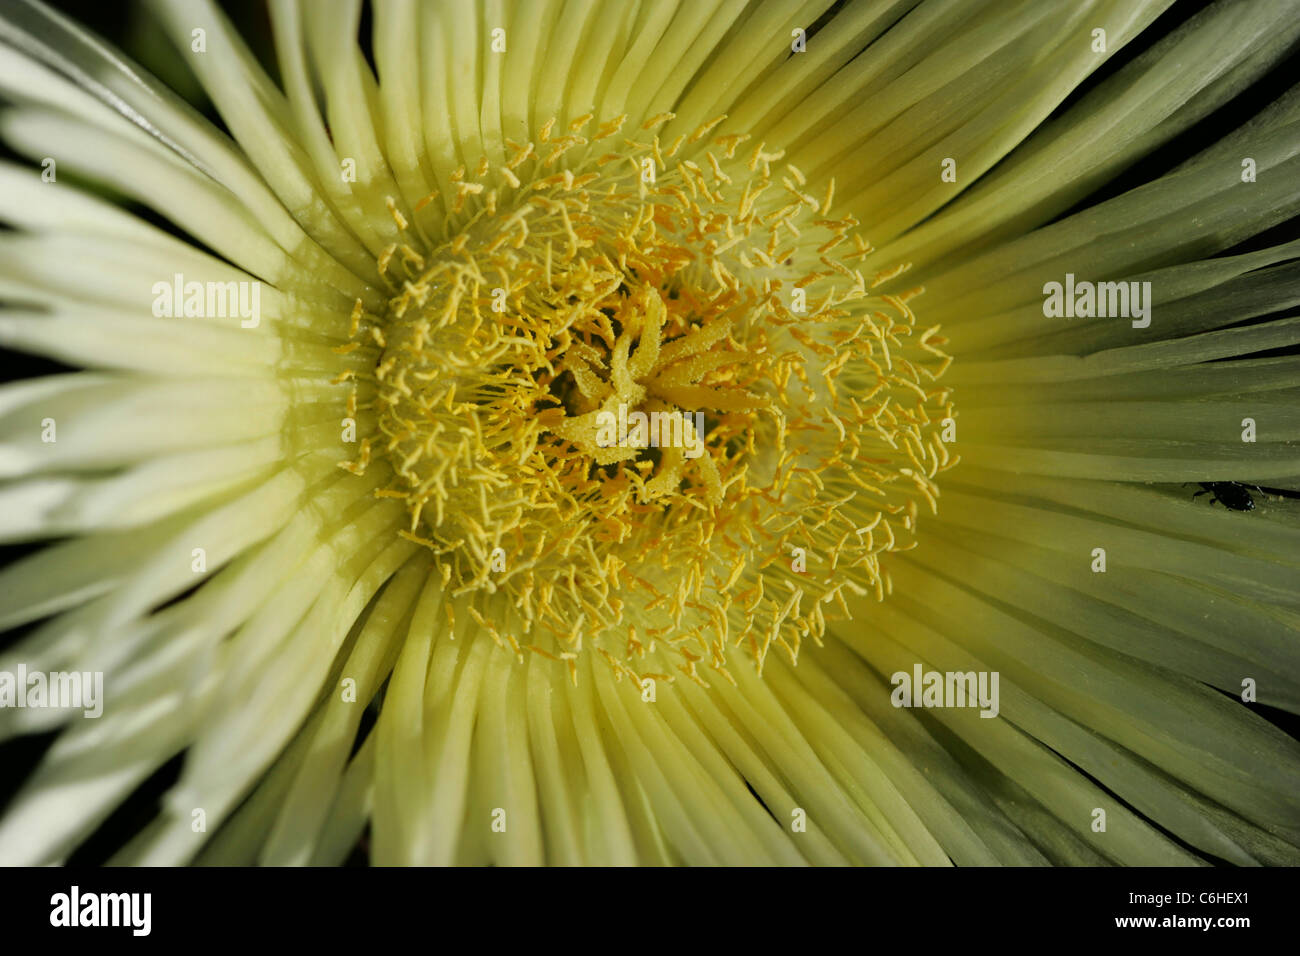 Close-up of a white composite flower - Stock Image